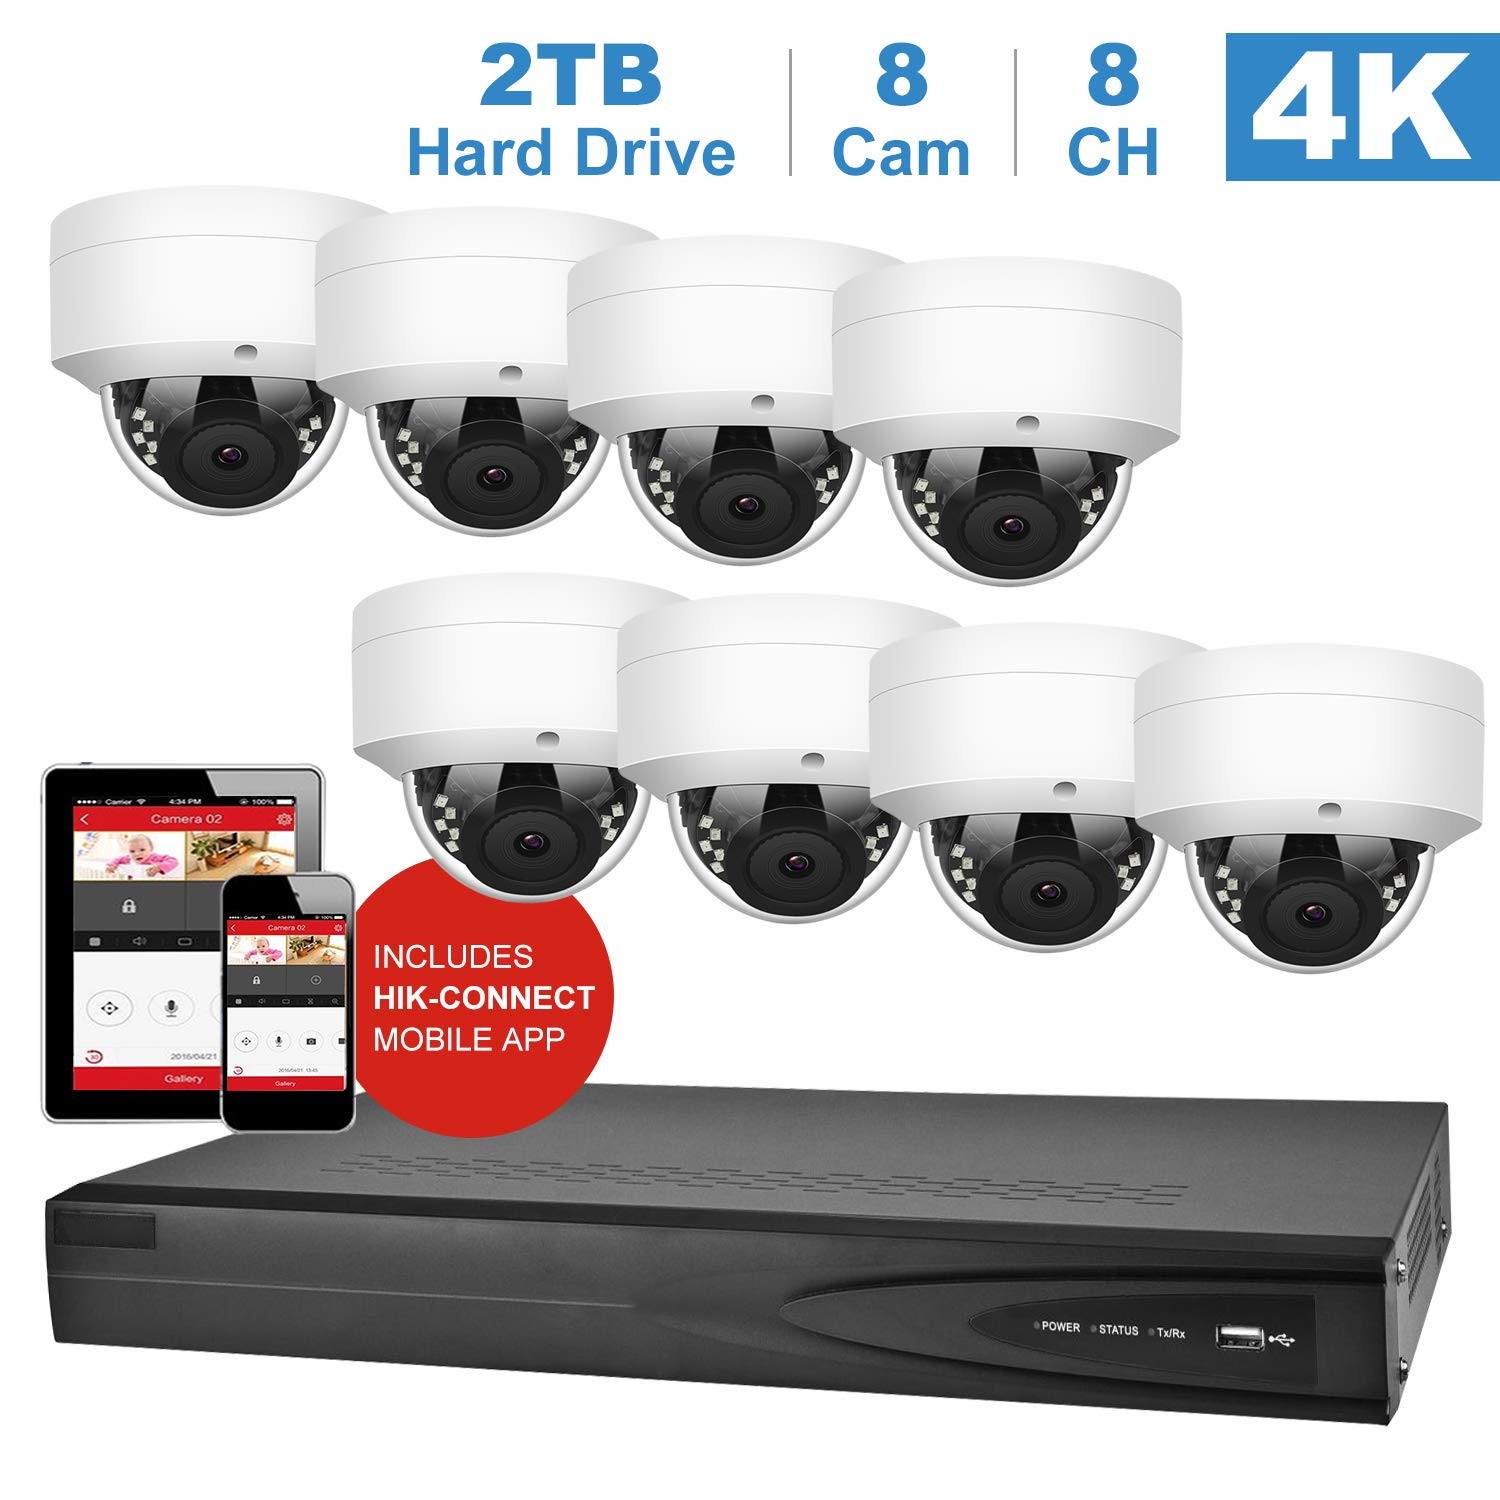 【Audio】Anpviz 8CH 4K NVR 5MP IP PoE Home Security Camera Systems H.265+ Onvif NVR ( Compatible with Hikvision DS-7608NI-K1/8P) with 2TB HDD 8pcs 5MP POE IP Dome Cameras Indoor Outdoor Wide Angle 2.8mm